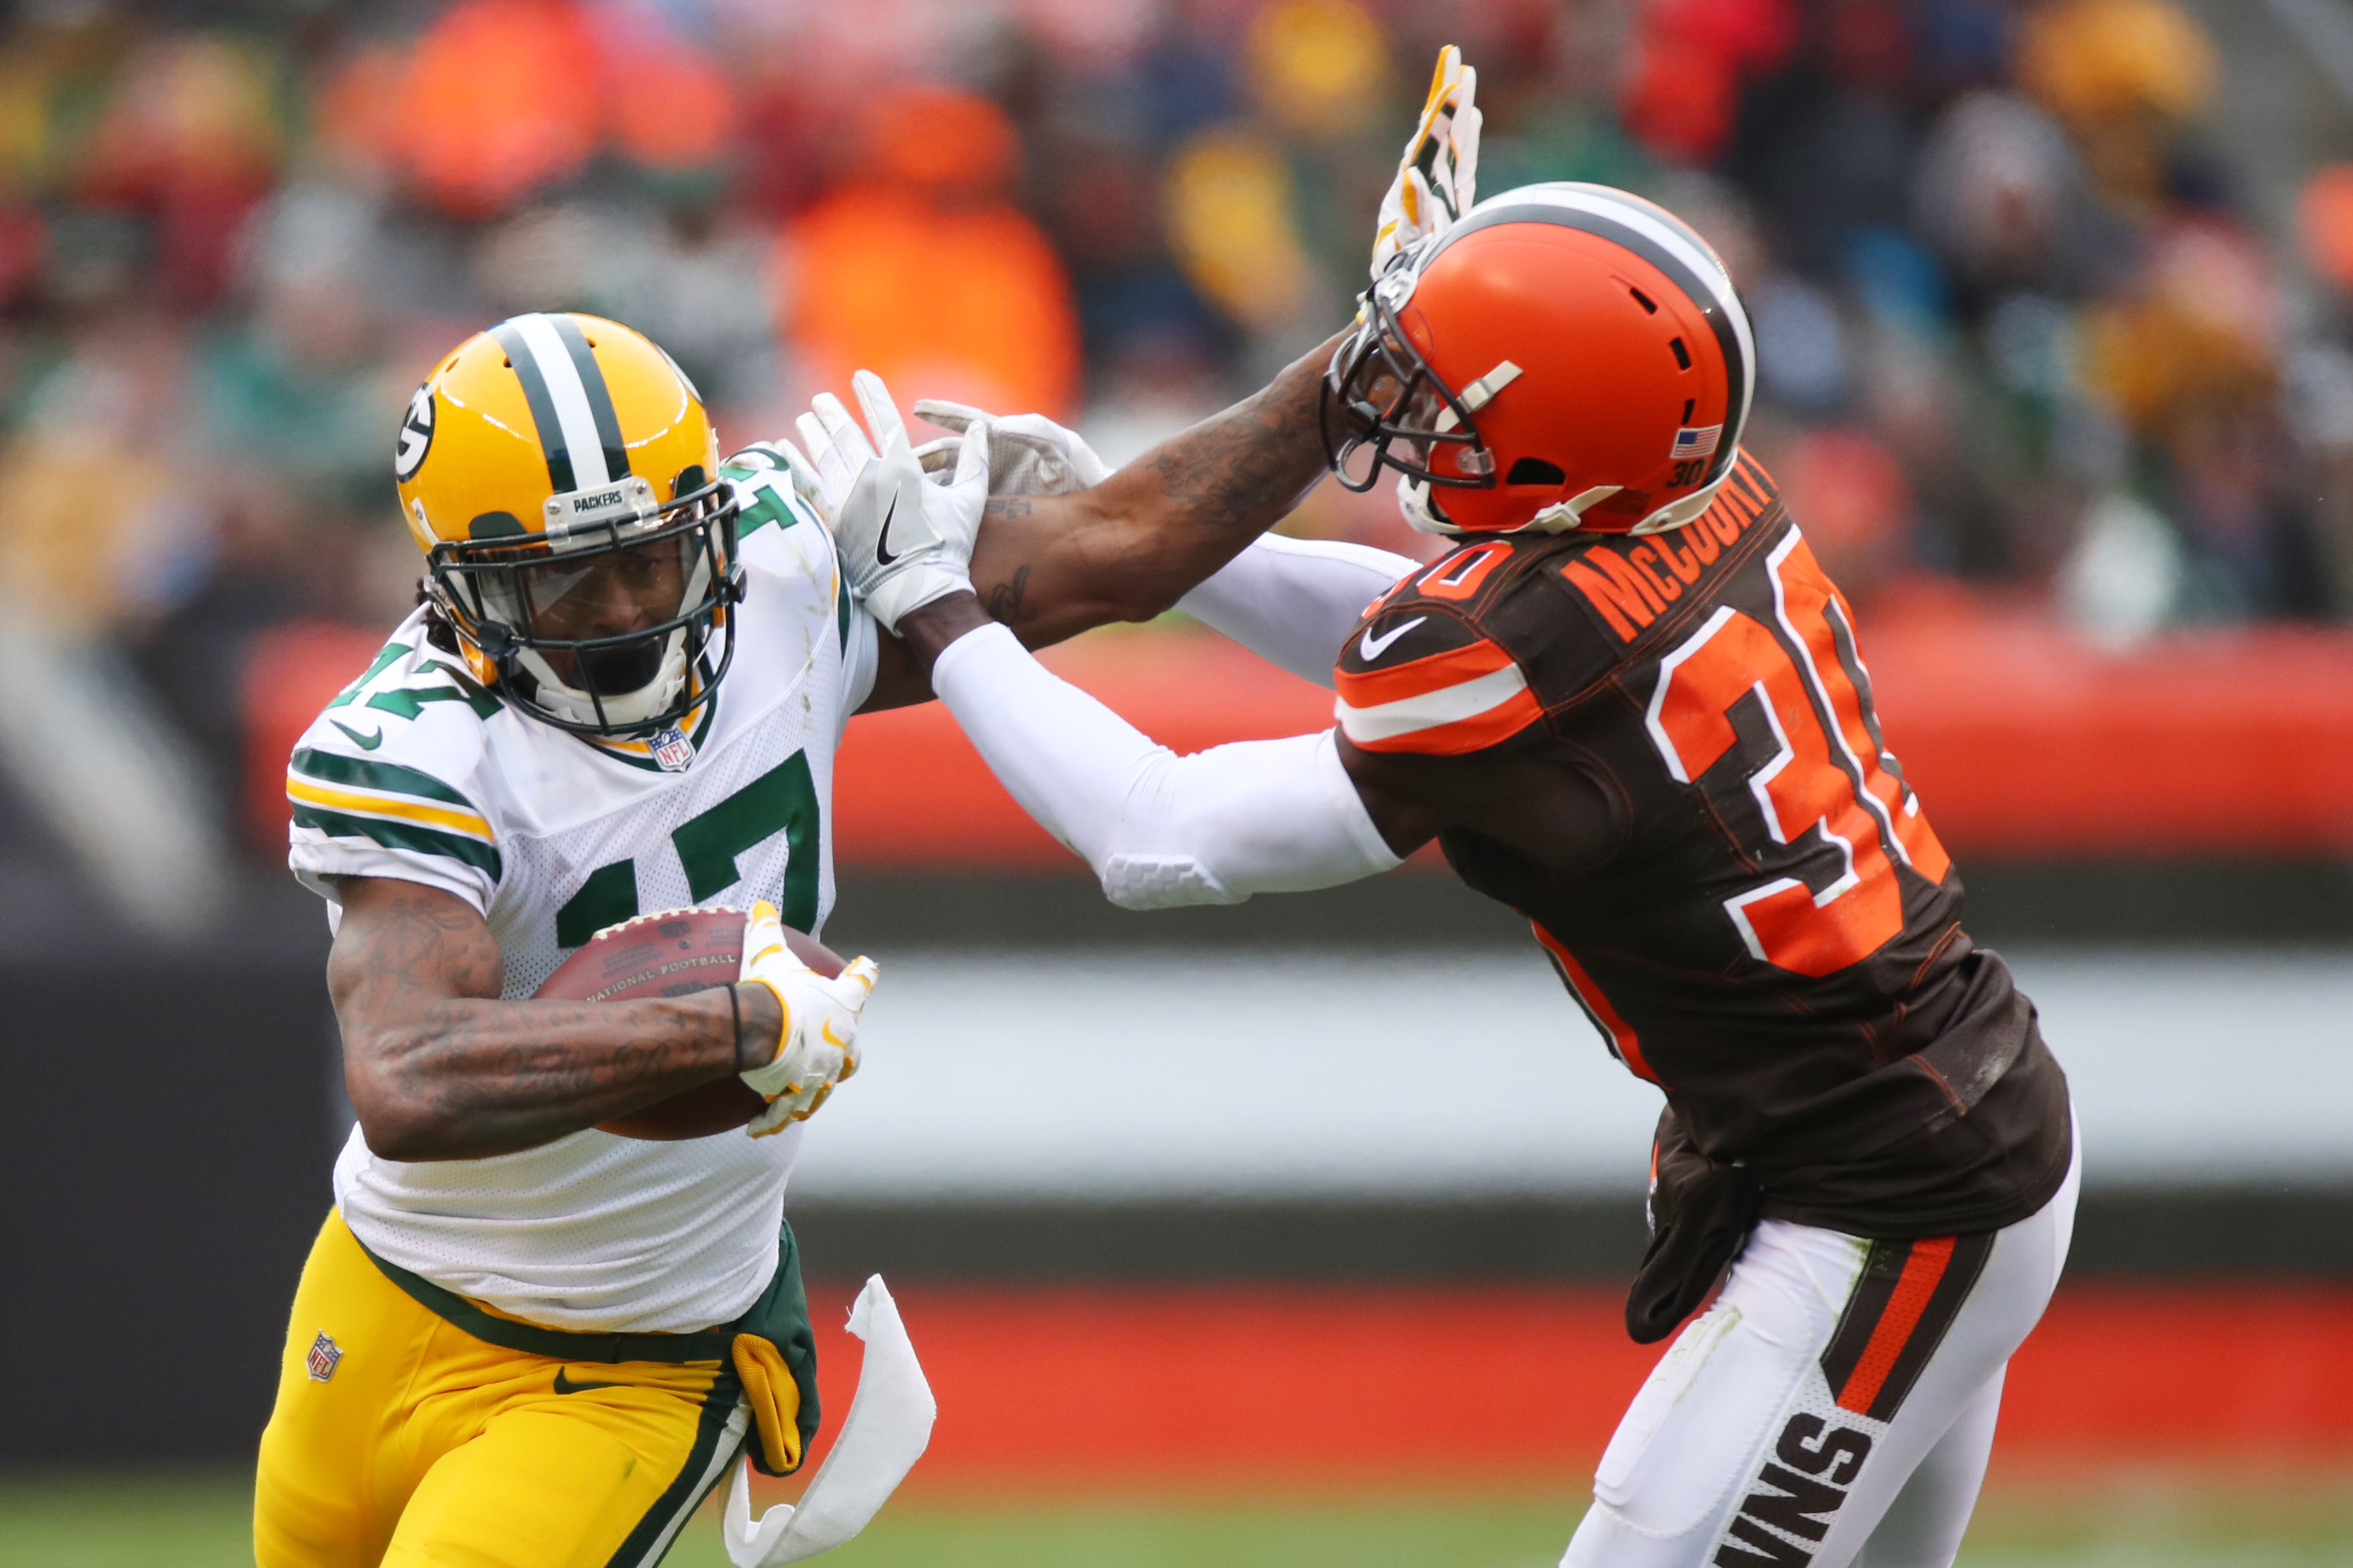 He's back: Packers QB Aaron Rodgers preps to play Panthers